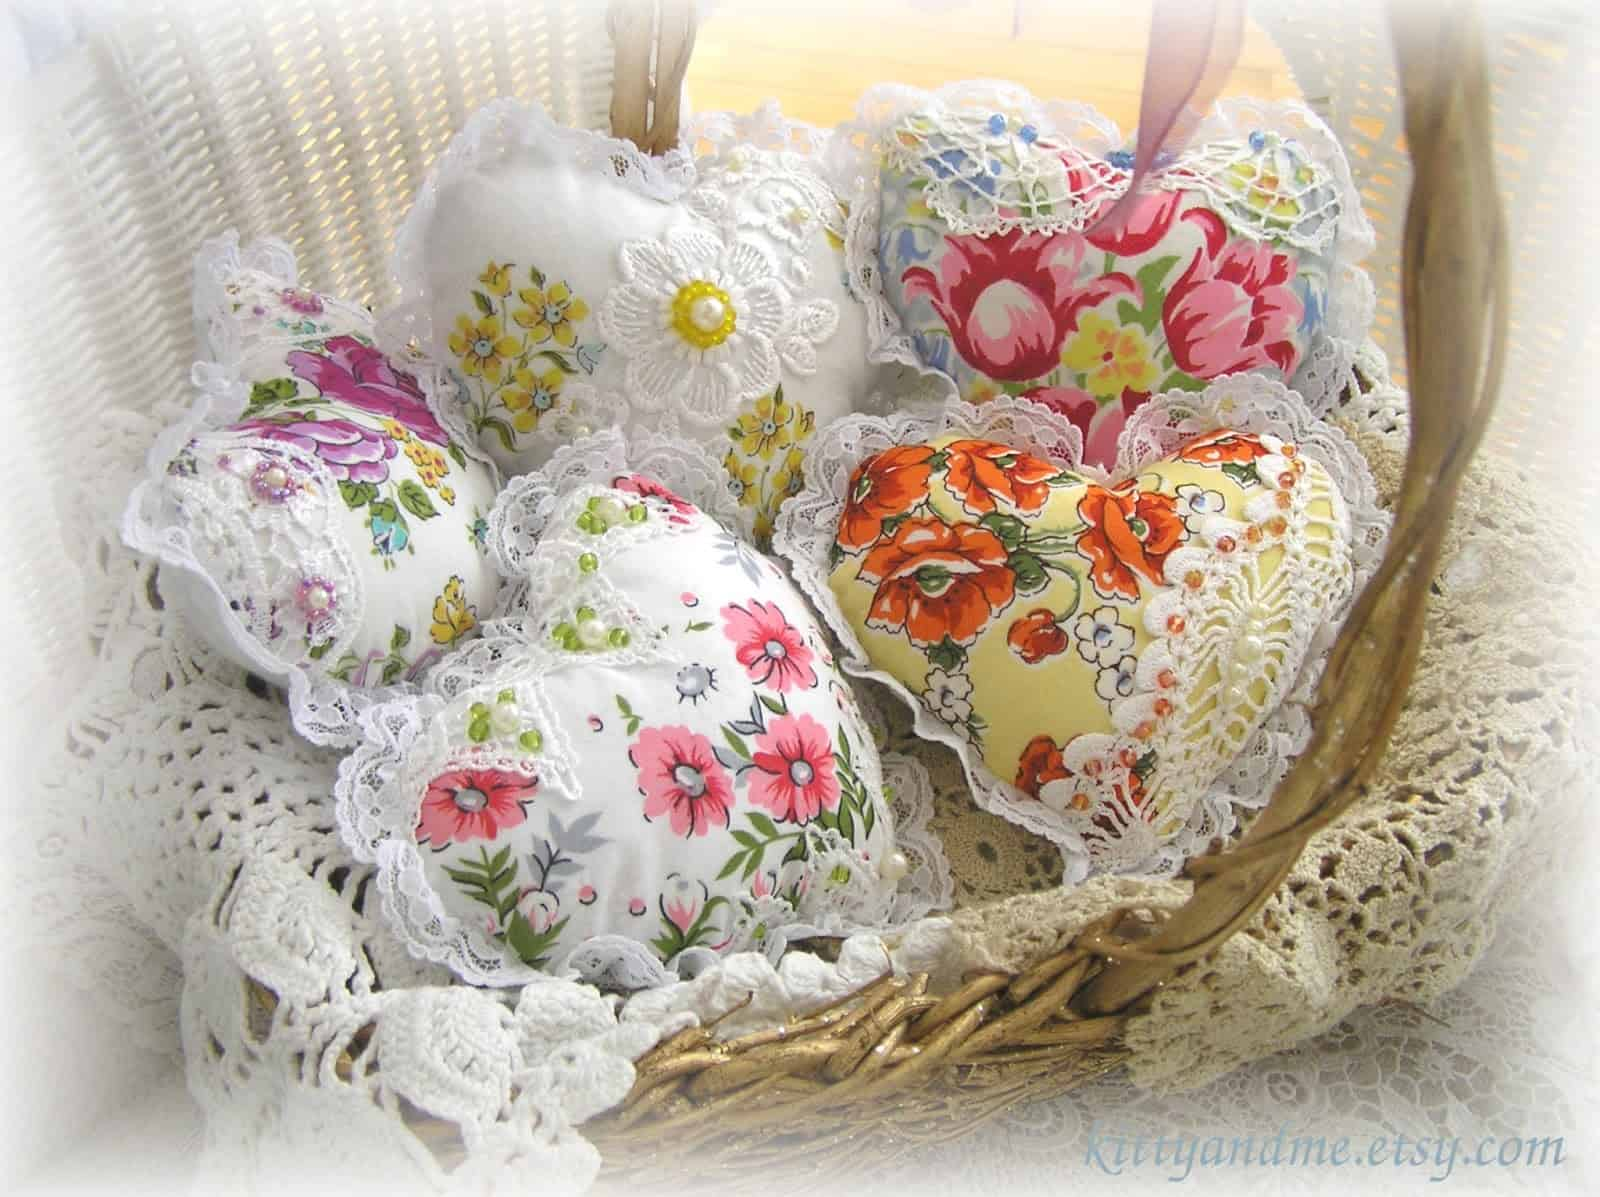 Scented bowl fillers made from handkerchiefs